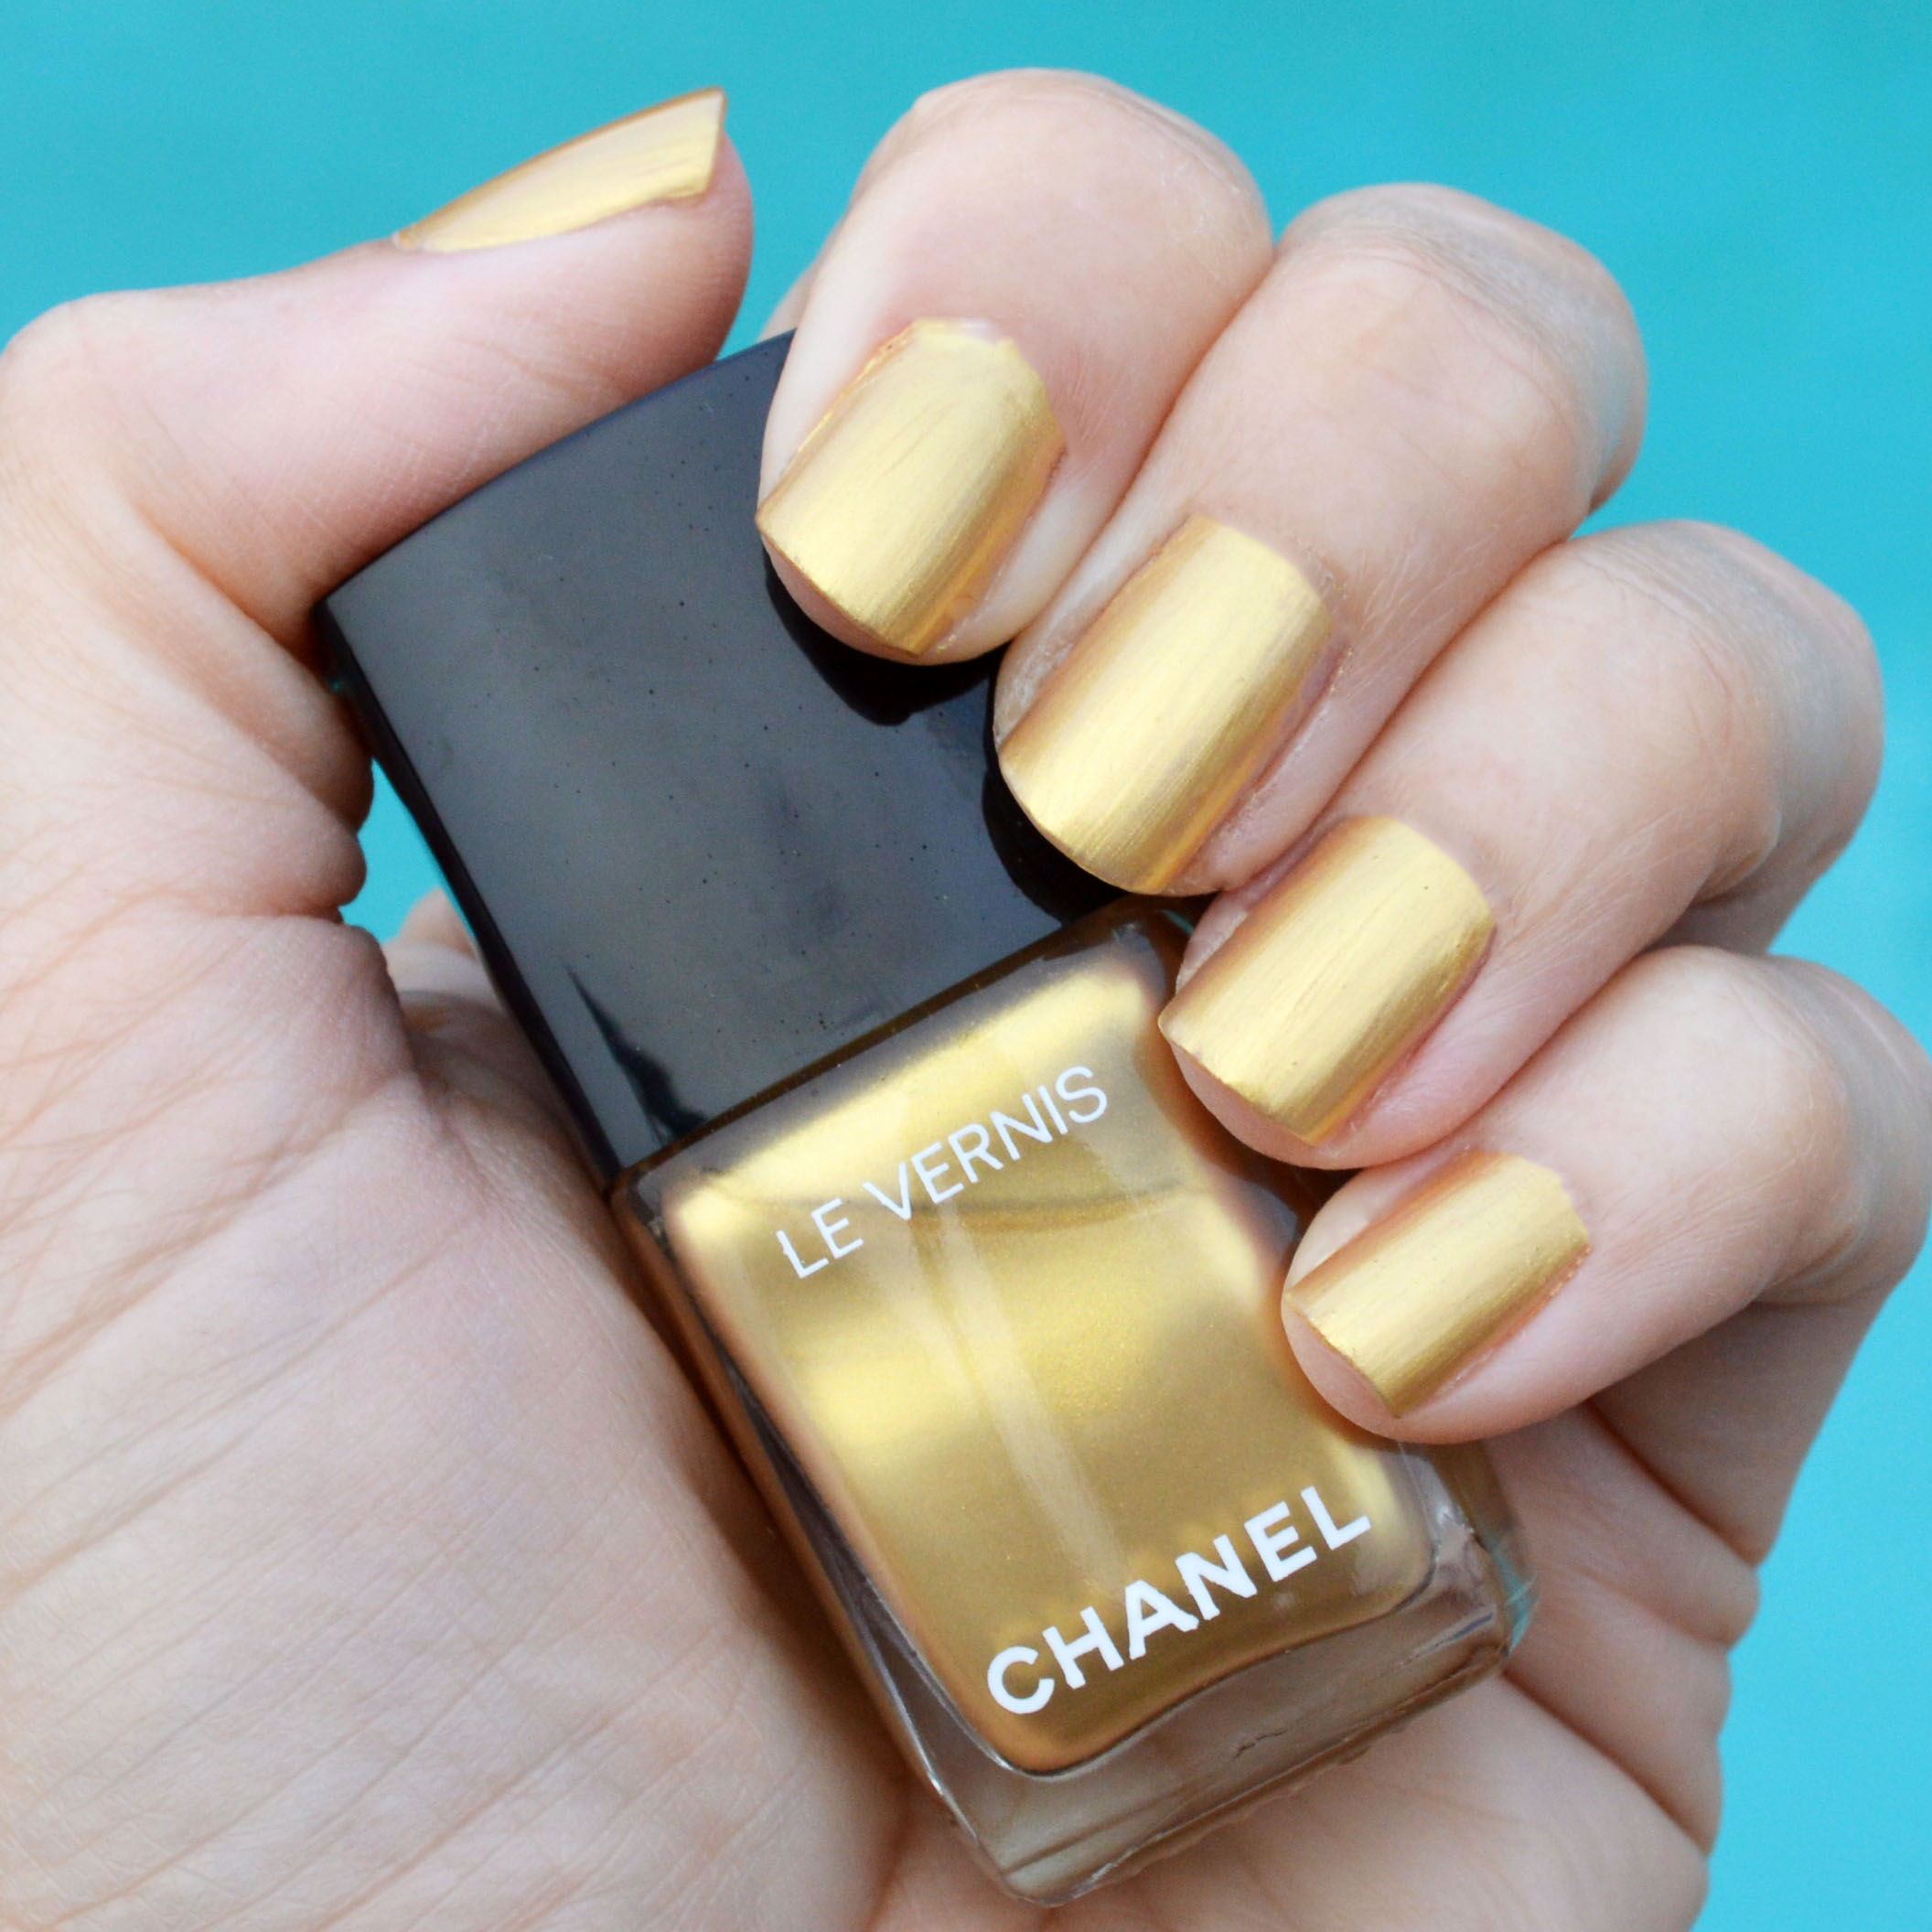 Chanel Chaine Or nail polish review | Bay Area Fashionista